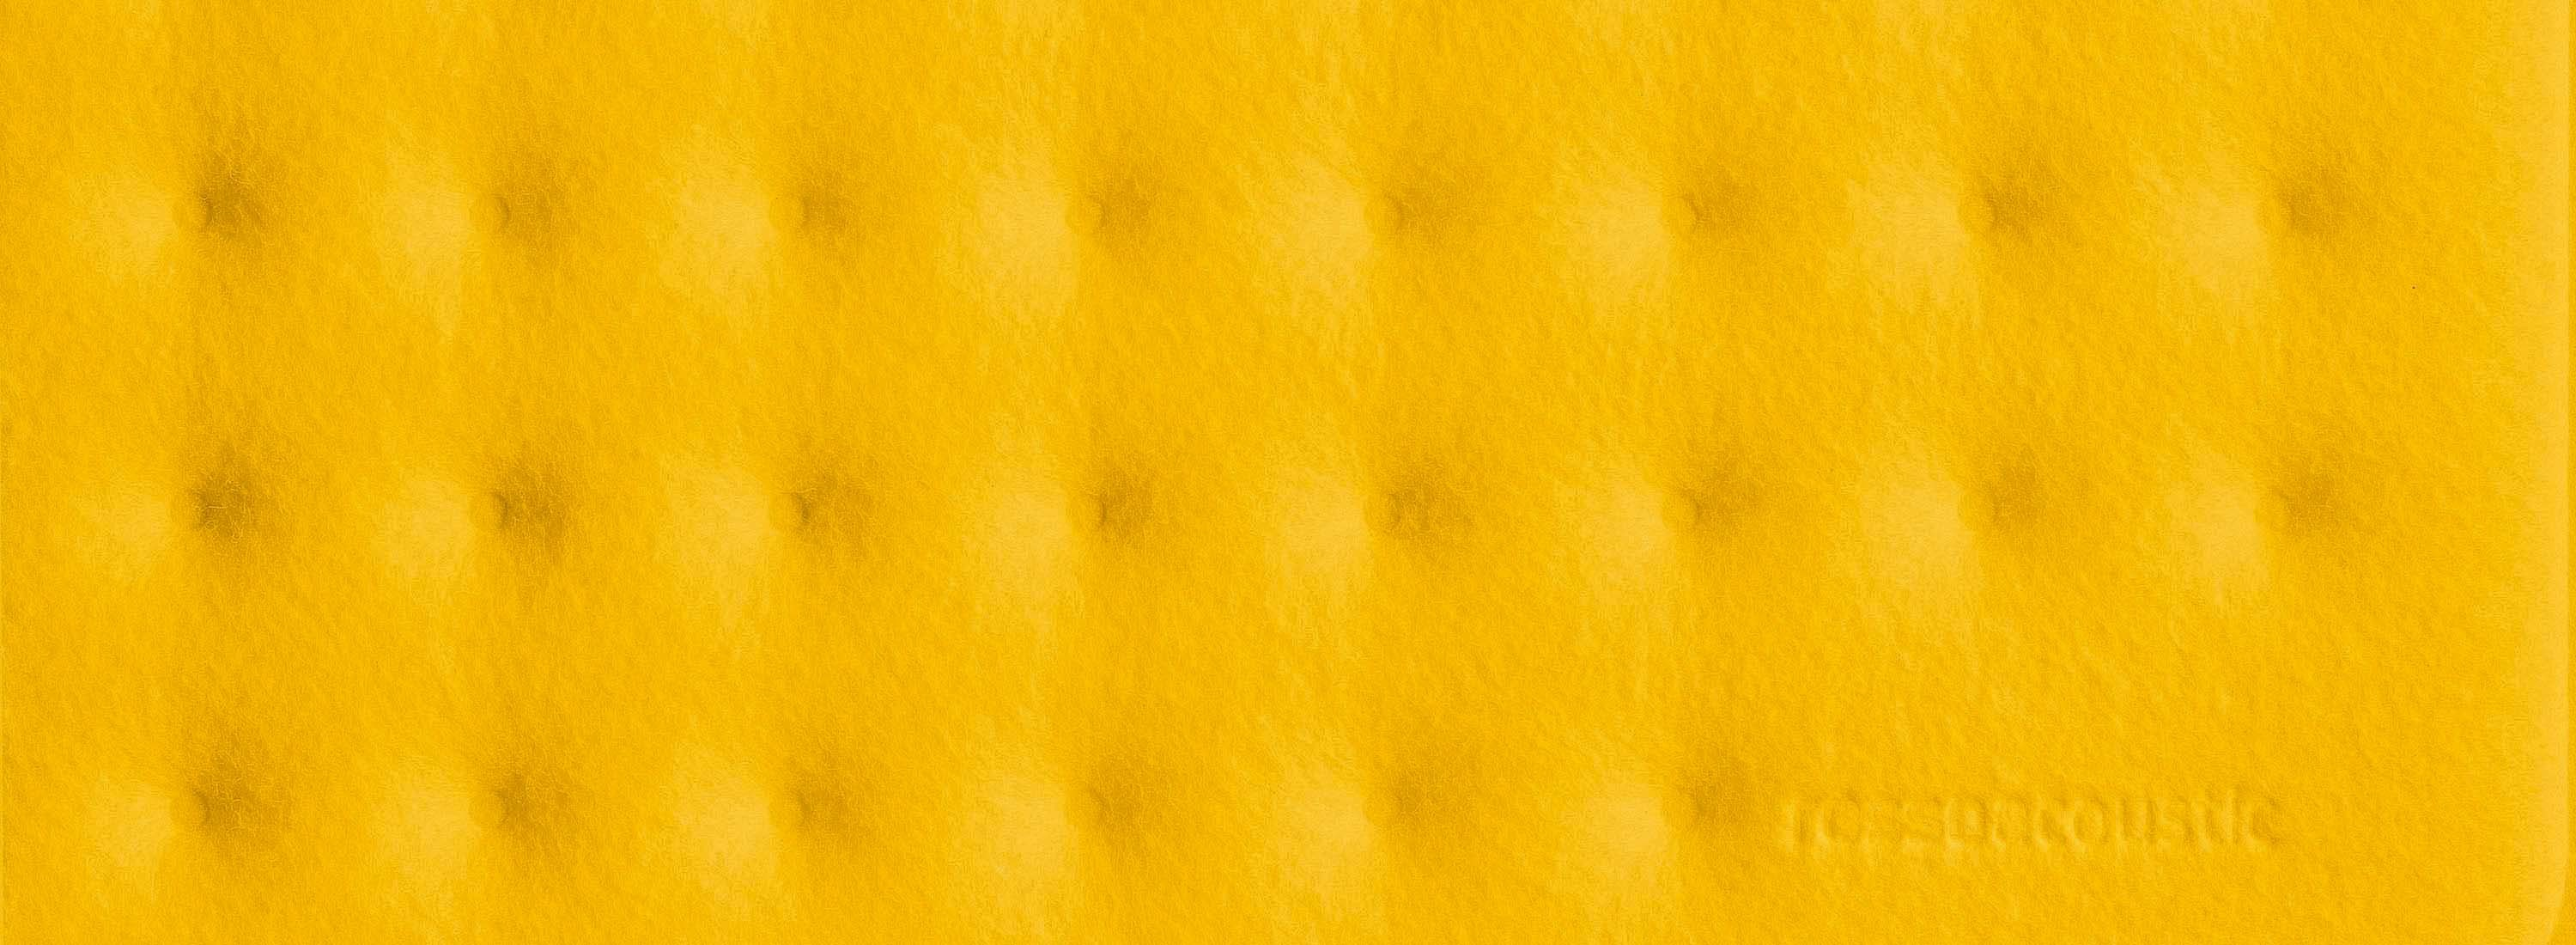 Rossoacoustic PAD R 1200 Basic, Ø1290 x 25 mm, yellow field